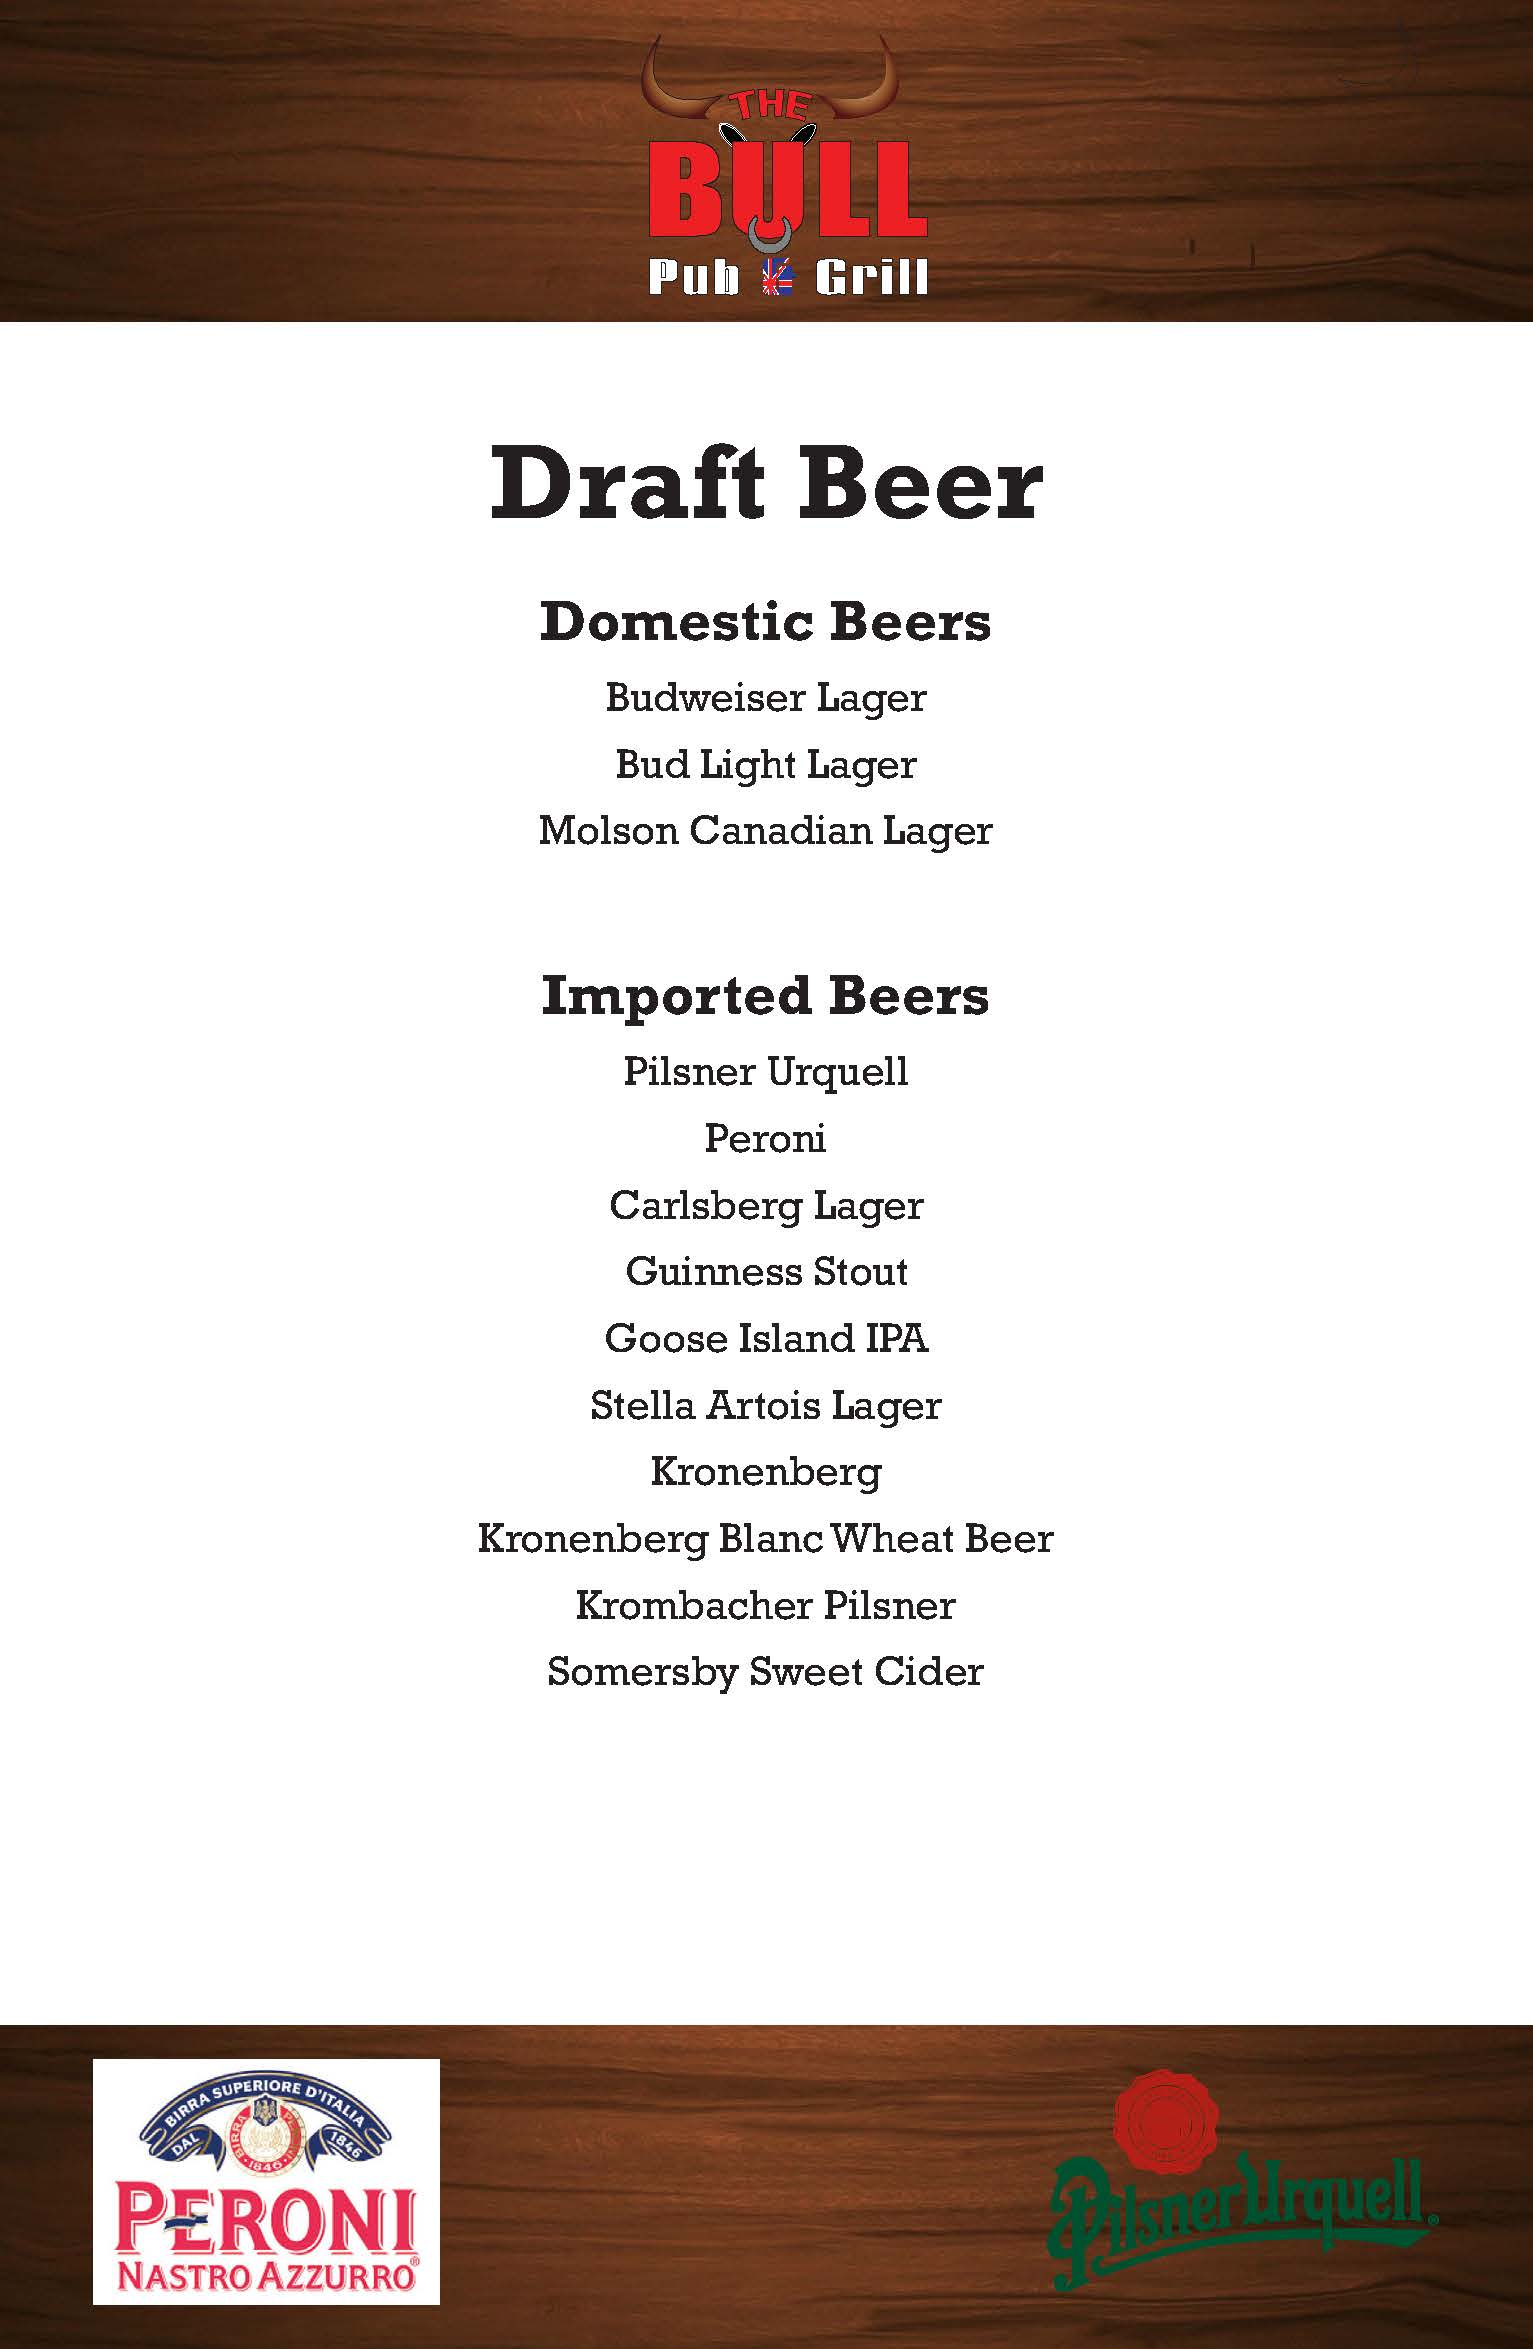 Bull Beer List August 2017_Page_2